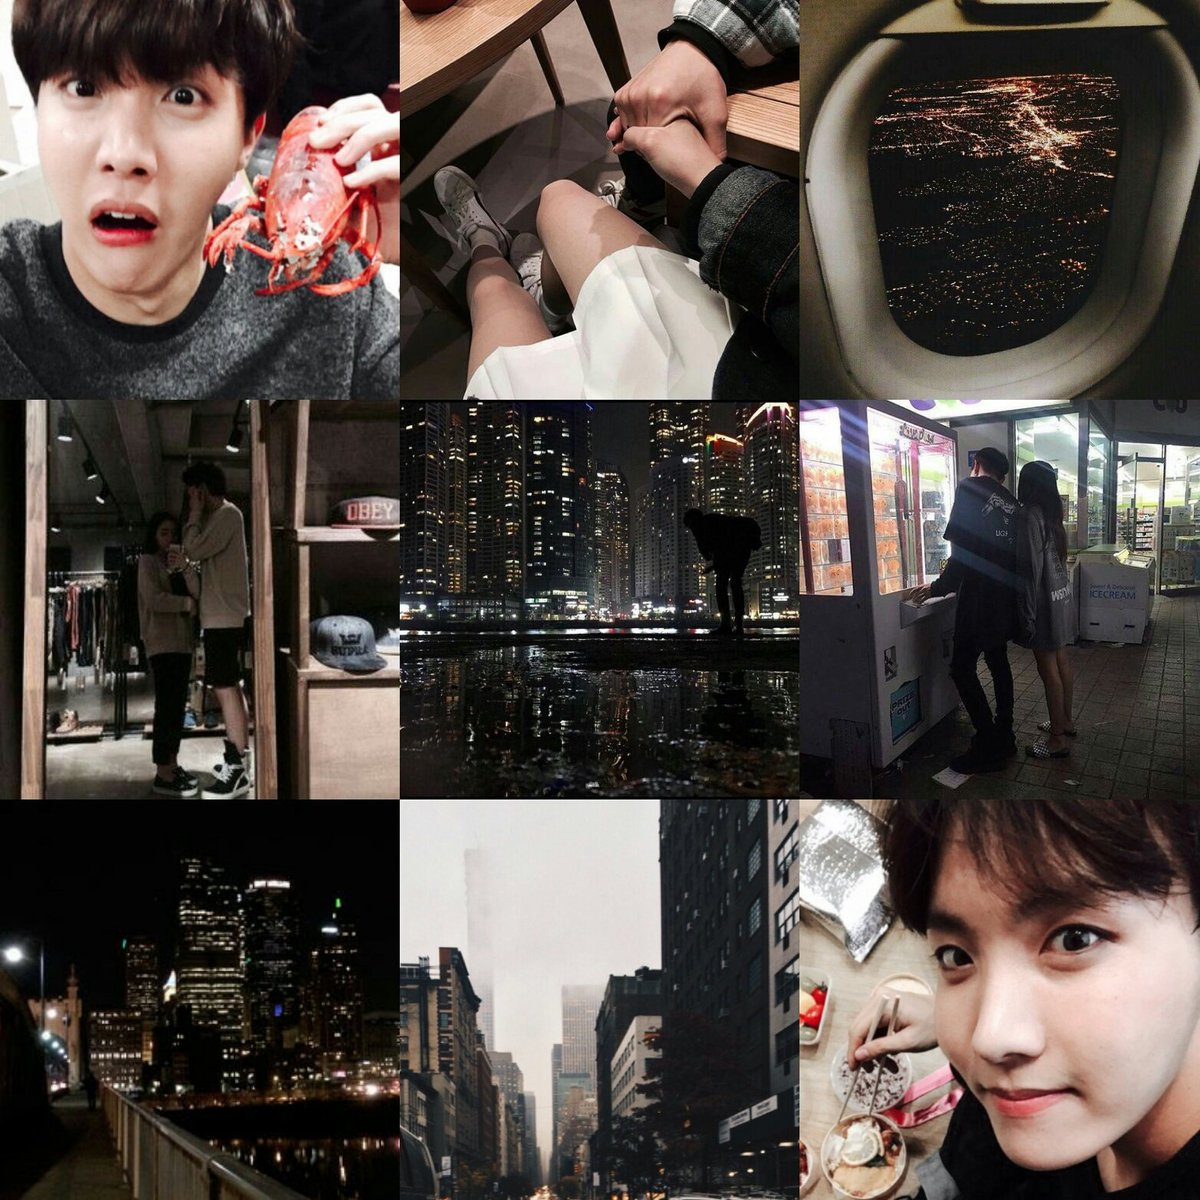 "ᅠᅠᅠᅠᅠ ""You got me thinking &#39;bout when you were mine.""  #BTS  #moodboard #aesthetic #JHOPE #hoseok #date #Army + @BTS_twt<br>http://pic.twitter.com/Ek1v5sCx4x"